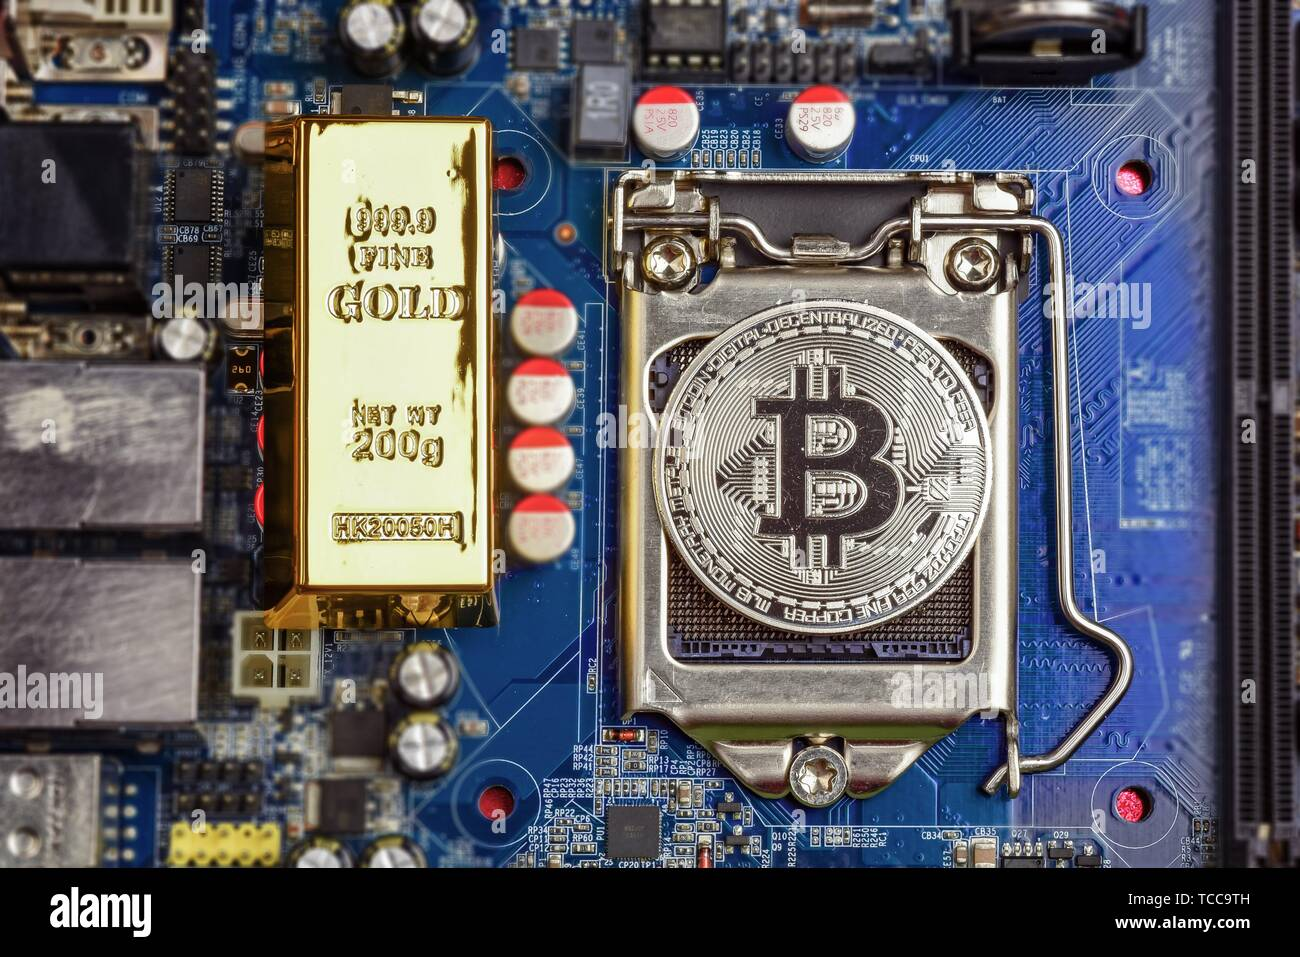 Top view of golden bit coin and golden brick or block on computer mother board processor. Bitcoin mining farm, working computer equipment concept. - Stock Image